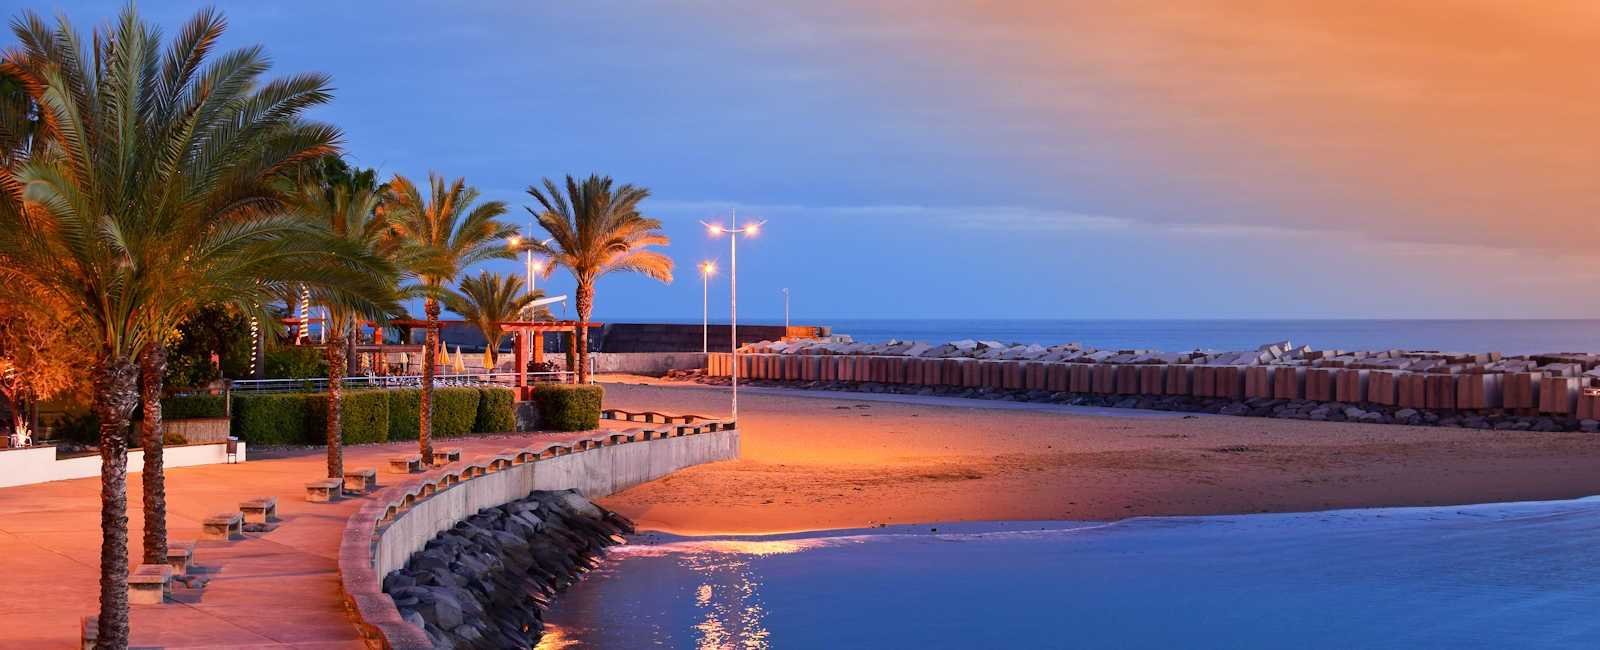 Luxury Calheta Holidays